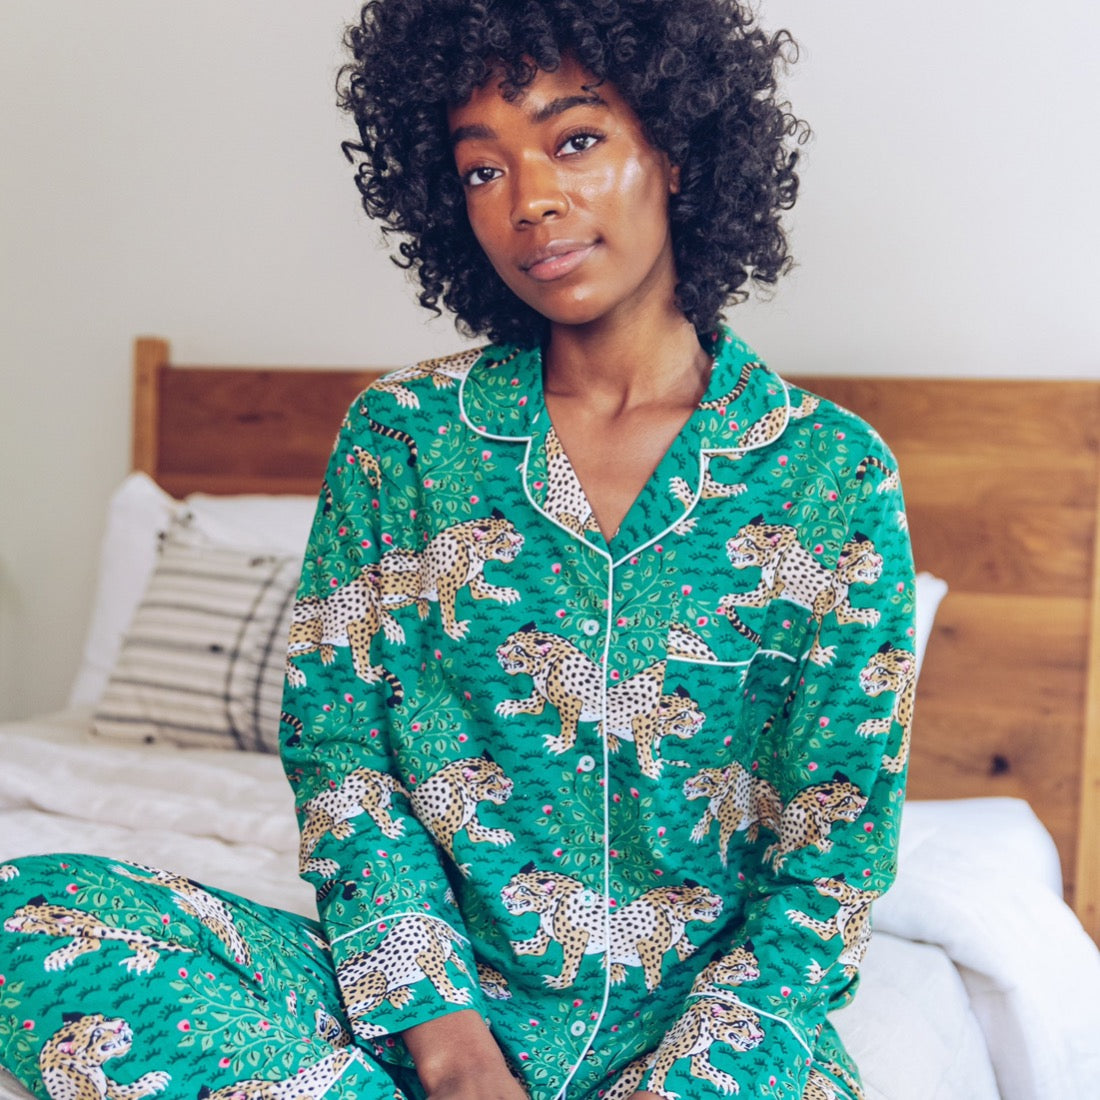 Printfresh Bagheera Leopard Print Long Sleeve Pajama set